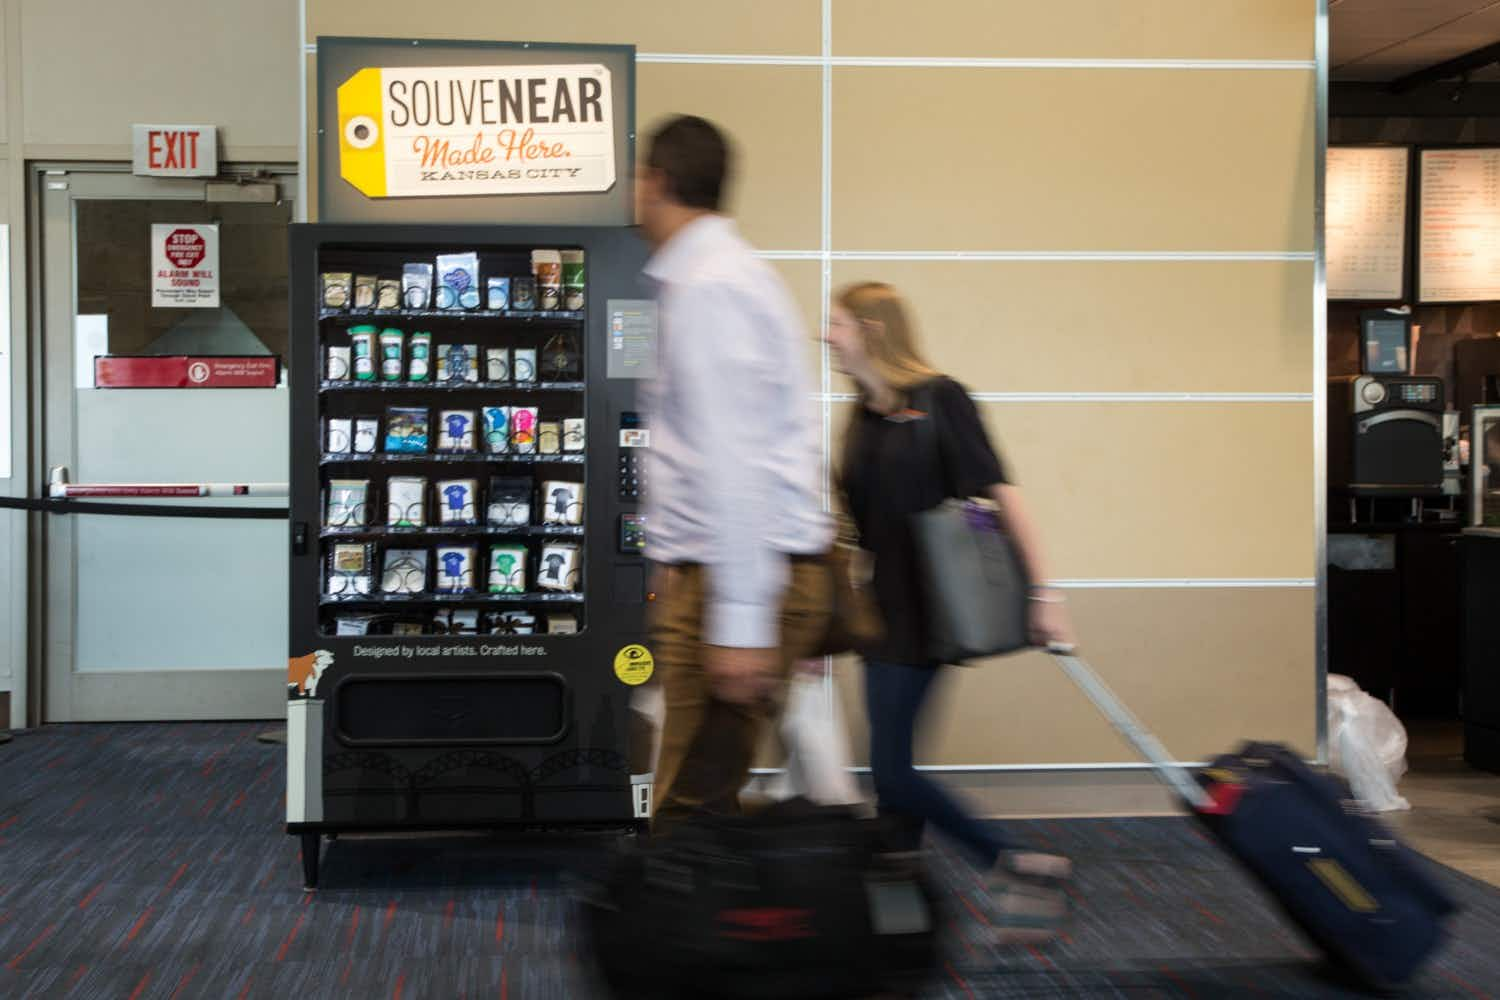 Need a last-minute souvenir? These airport vending machines sell locally-made artisan gifts